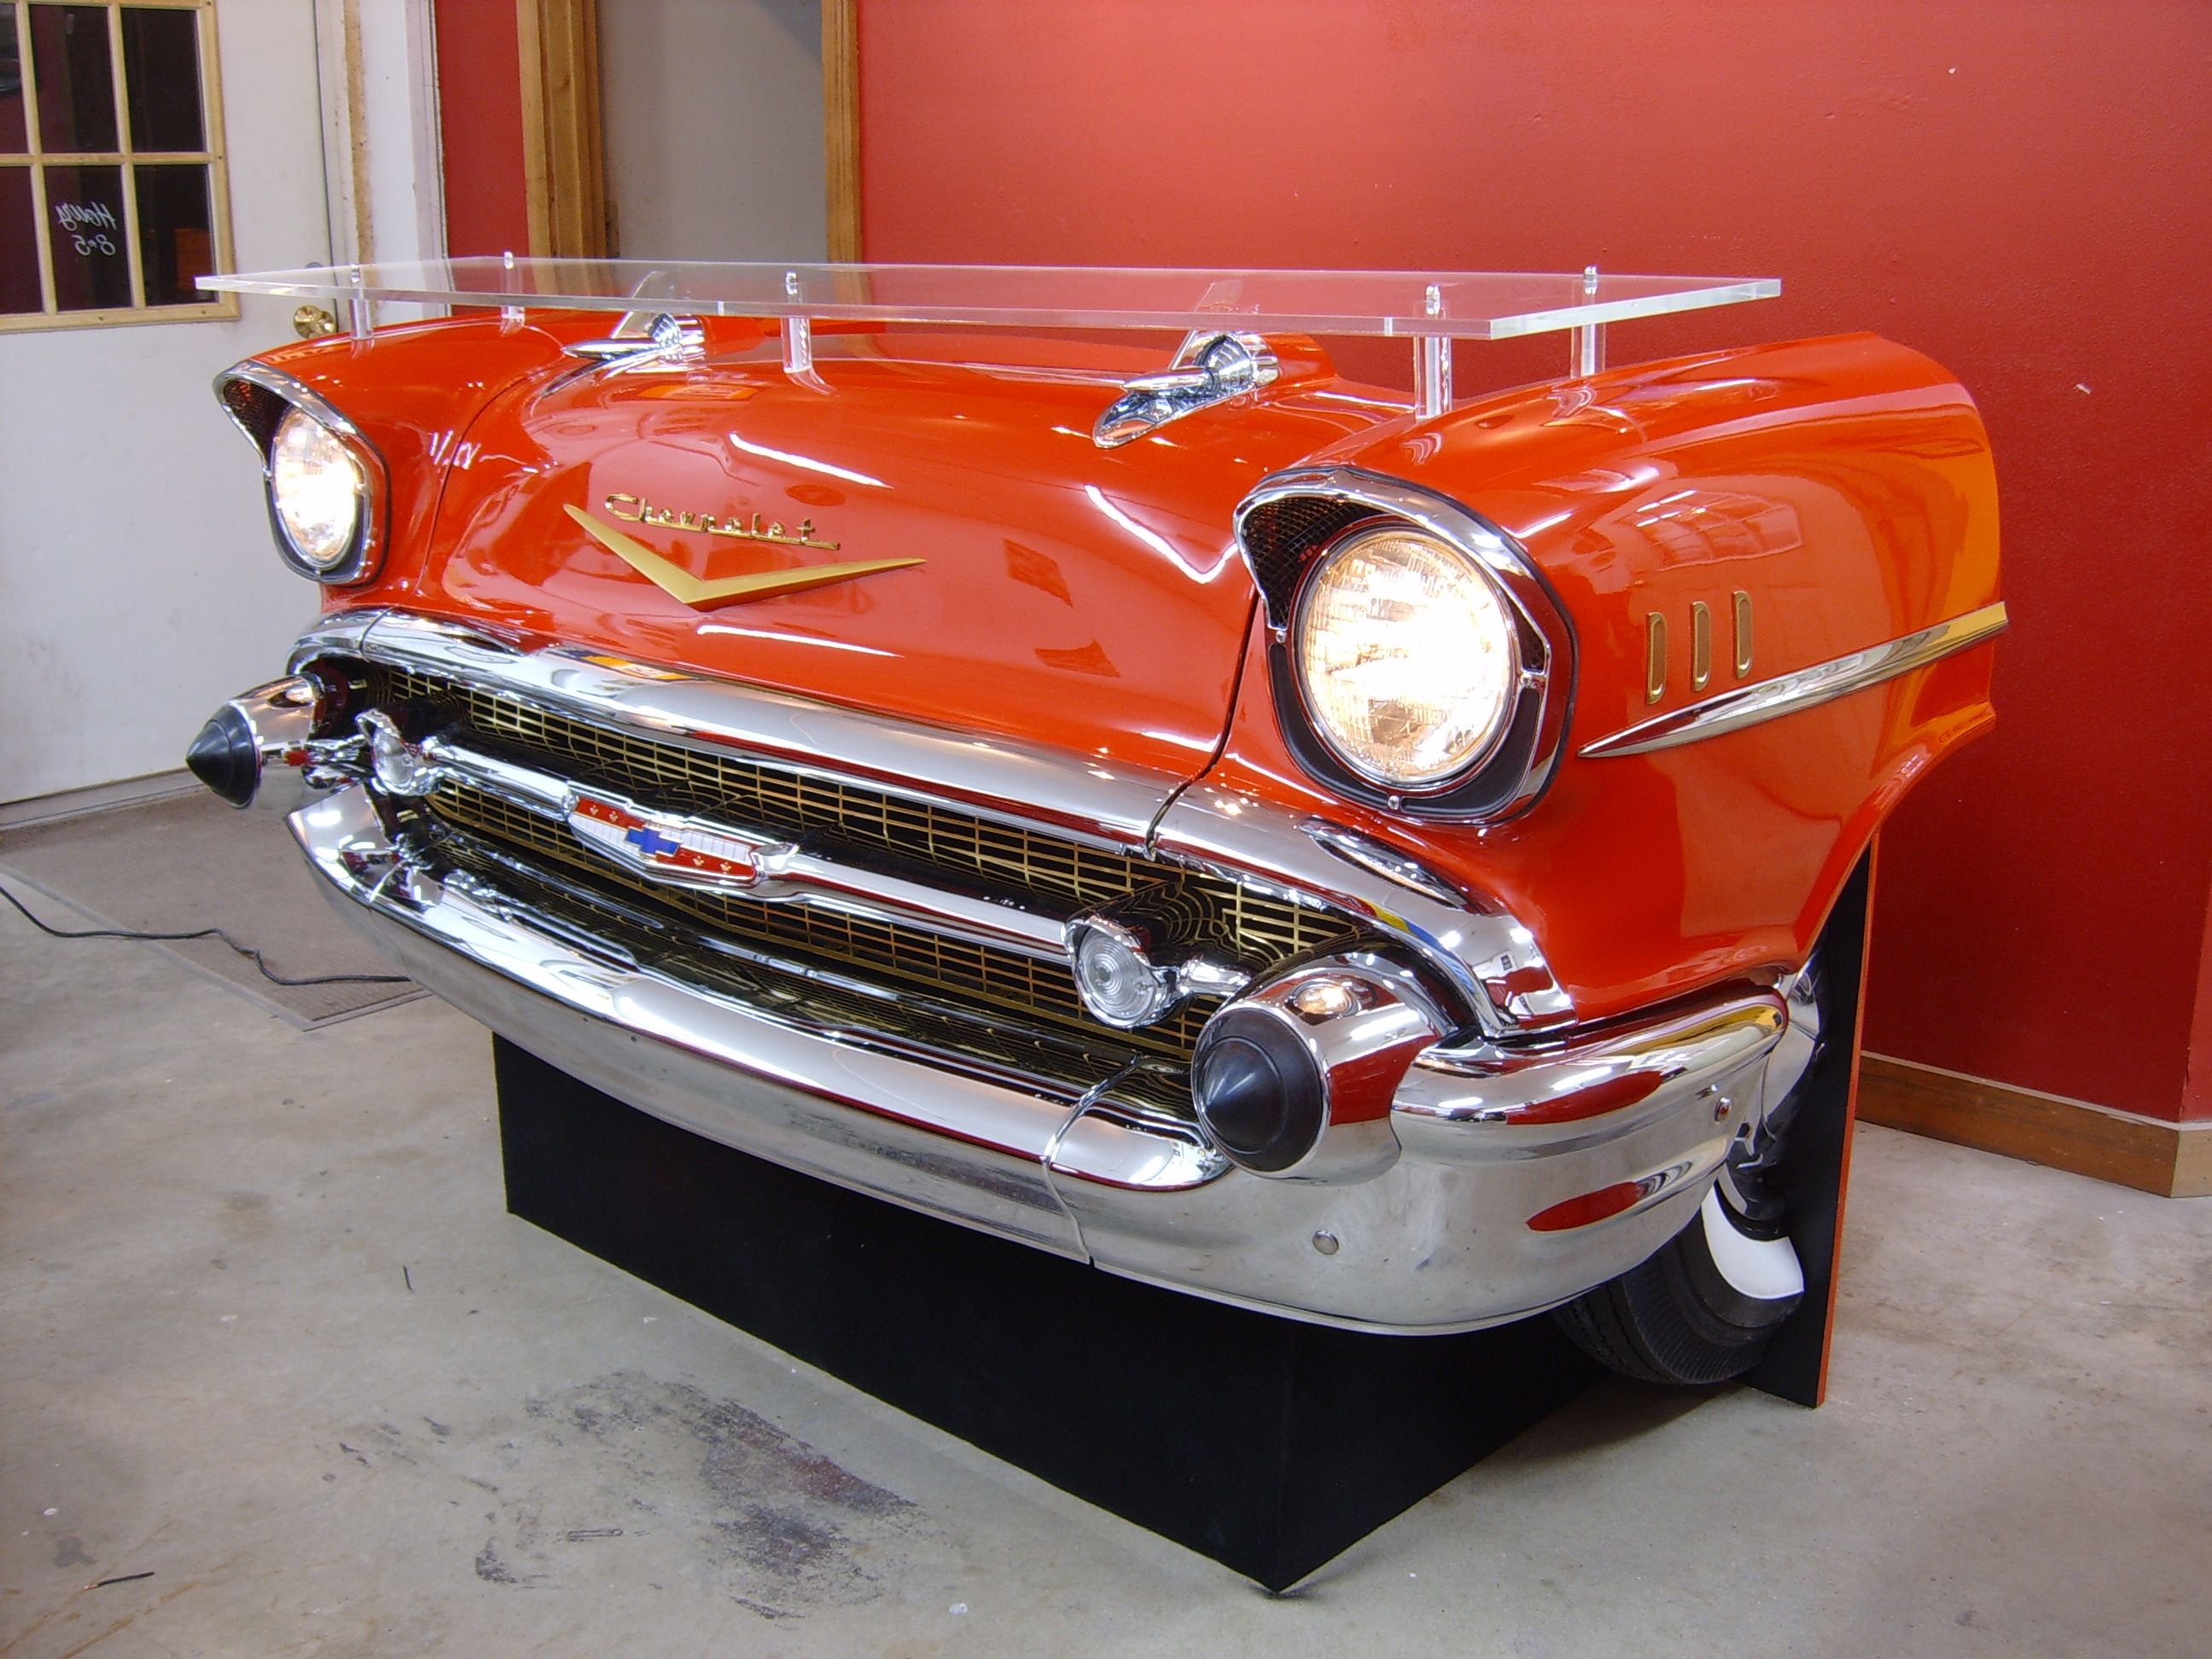 Car Desks Reception Desk Made From A Real Front End Would Be Awesome At A